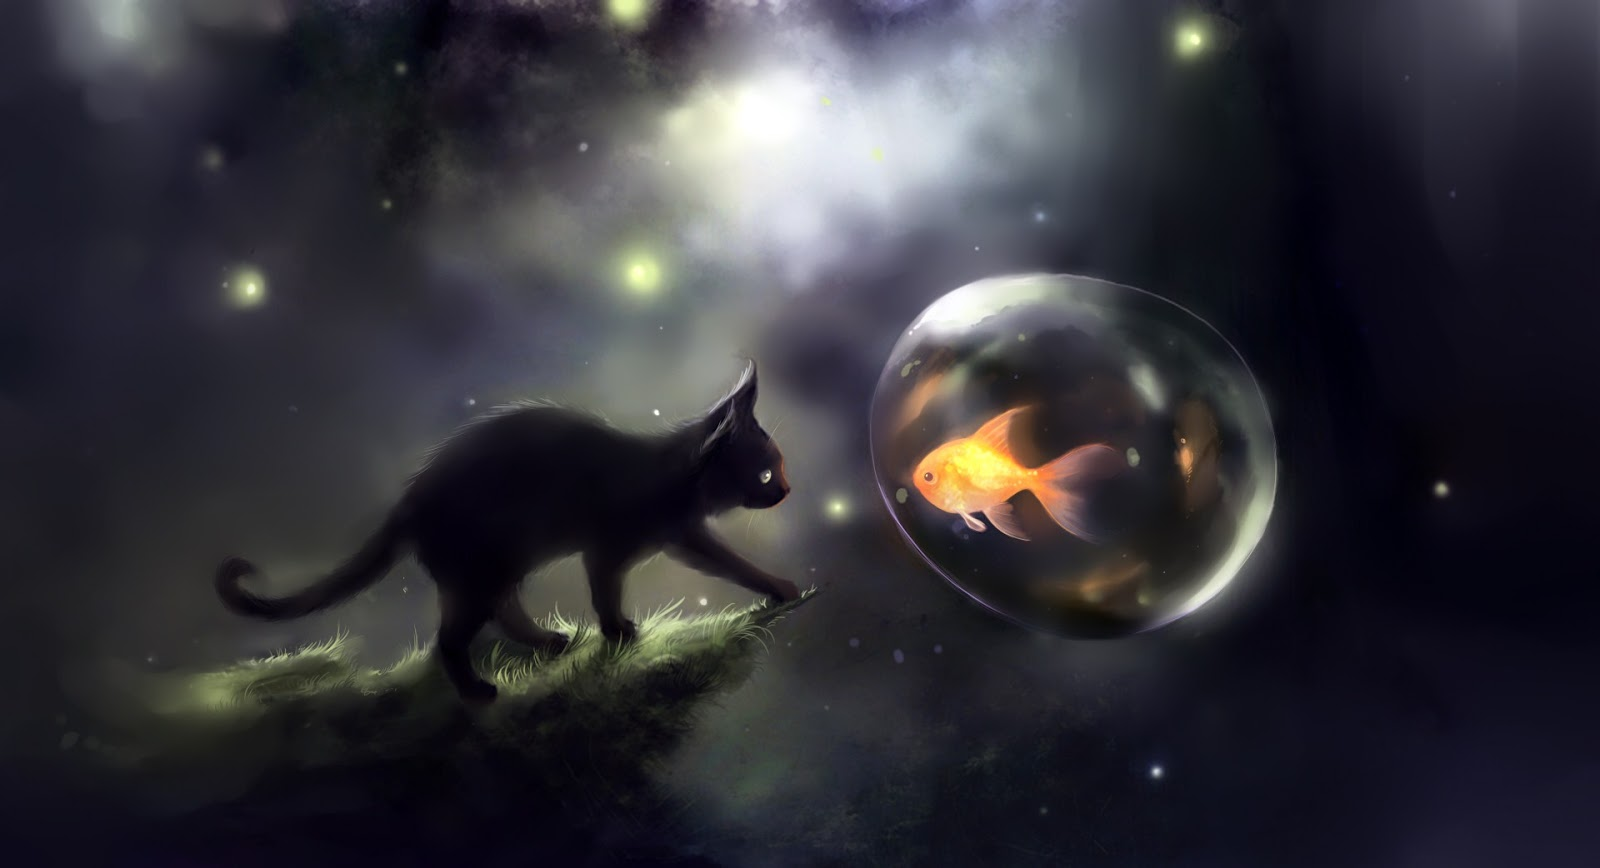 Black Cat And Goldfish Wallpaper Download 1600 X 868 Beautiful